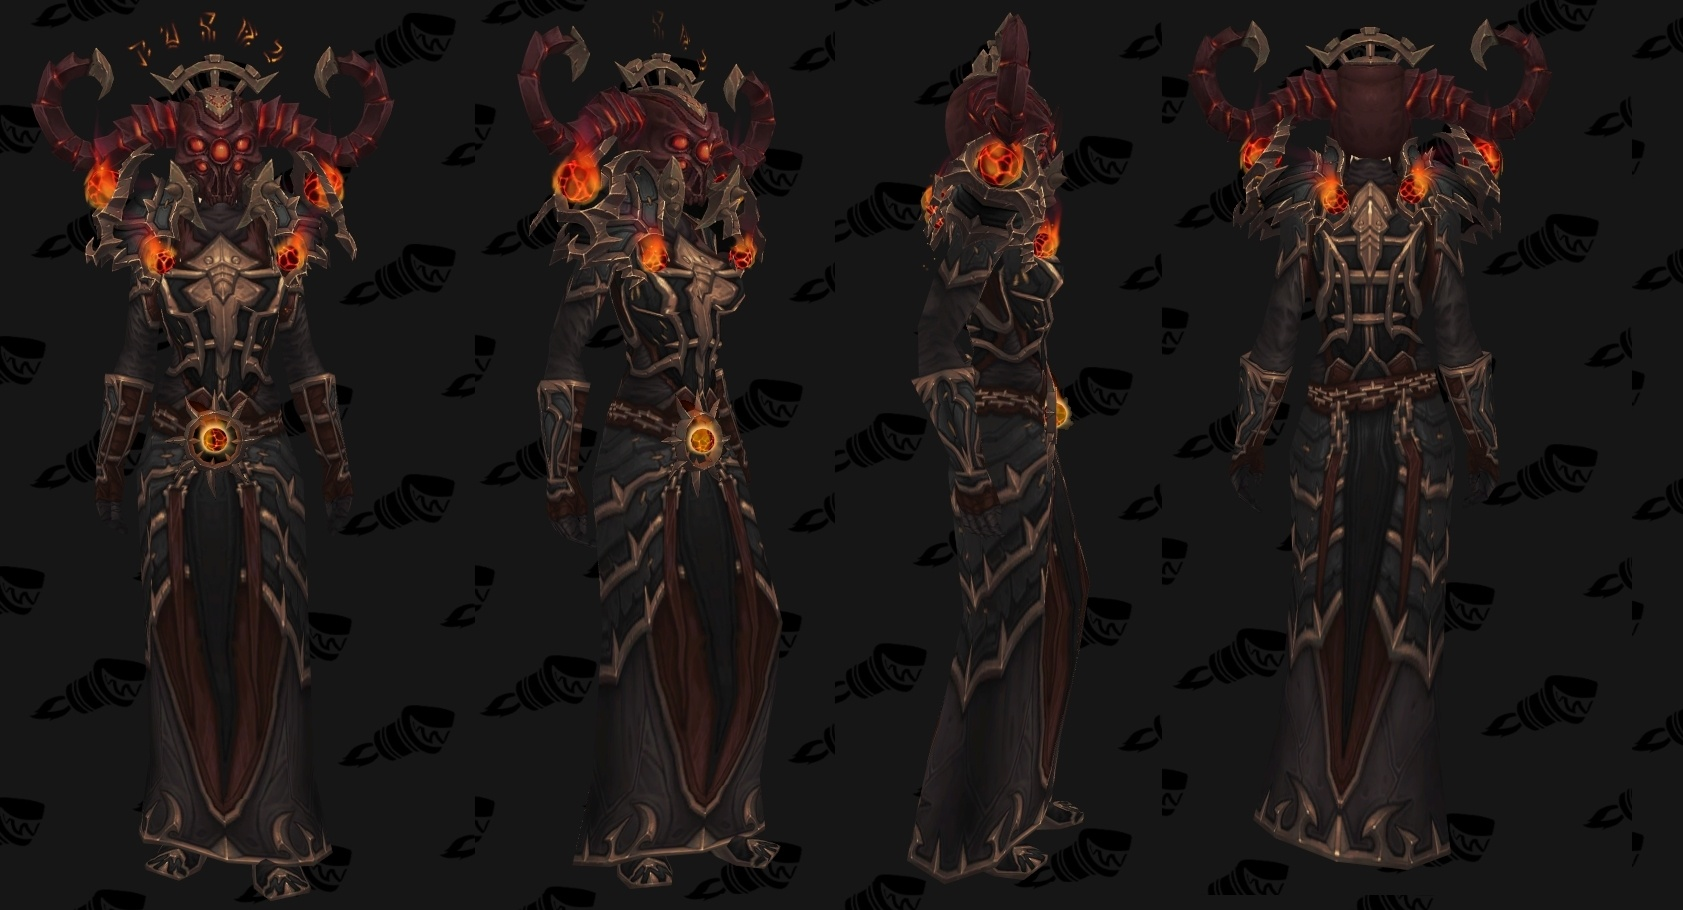 warlock-tier-19-mythic